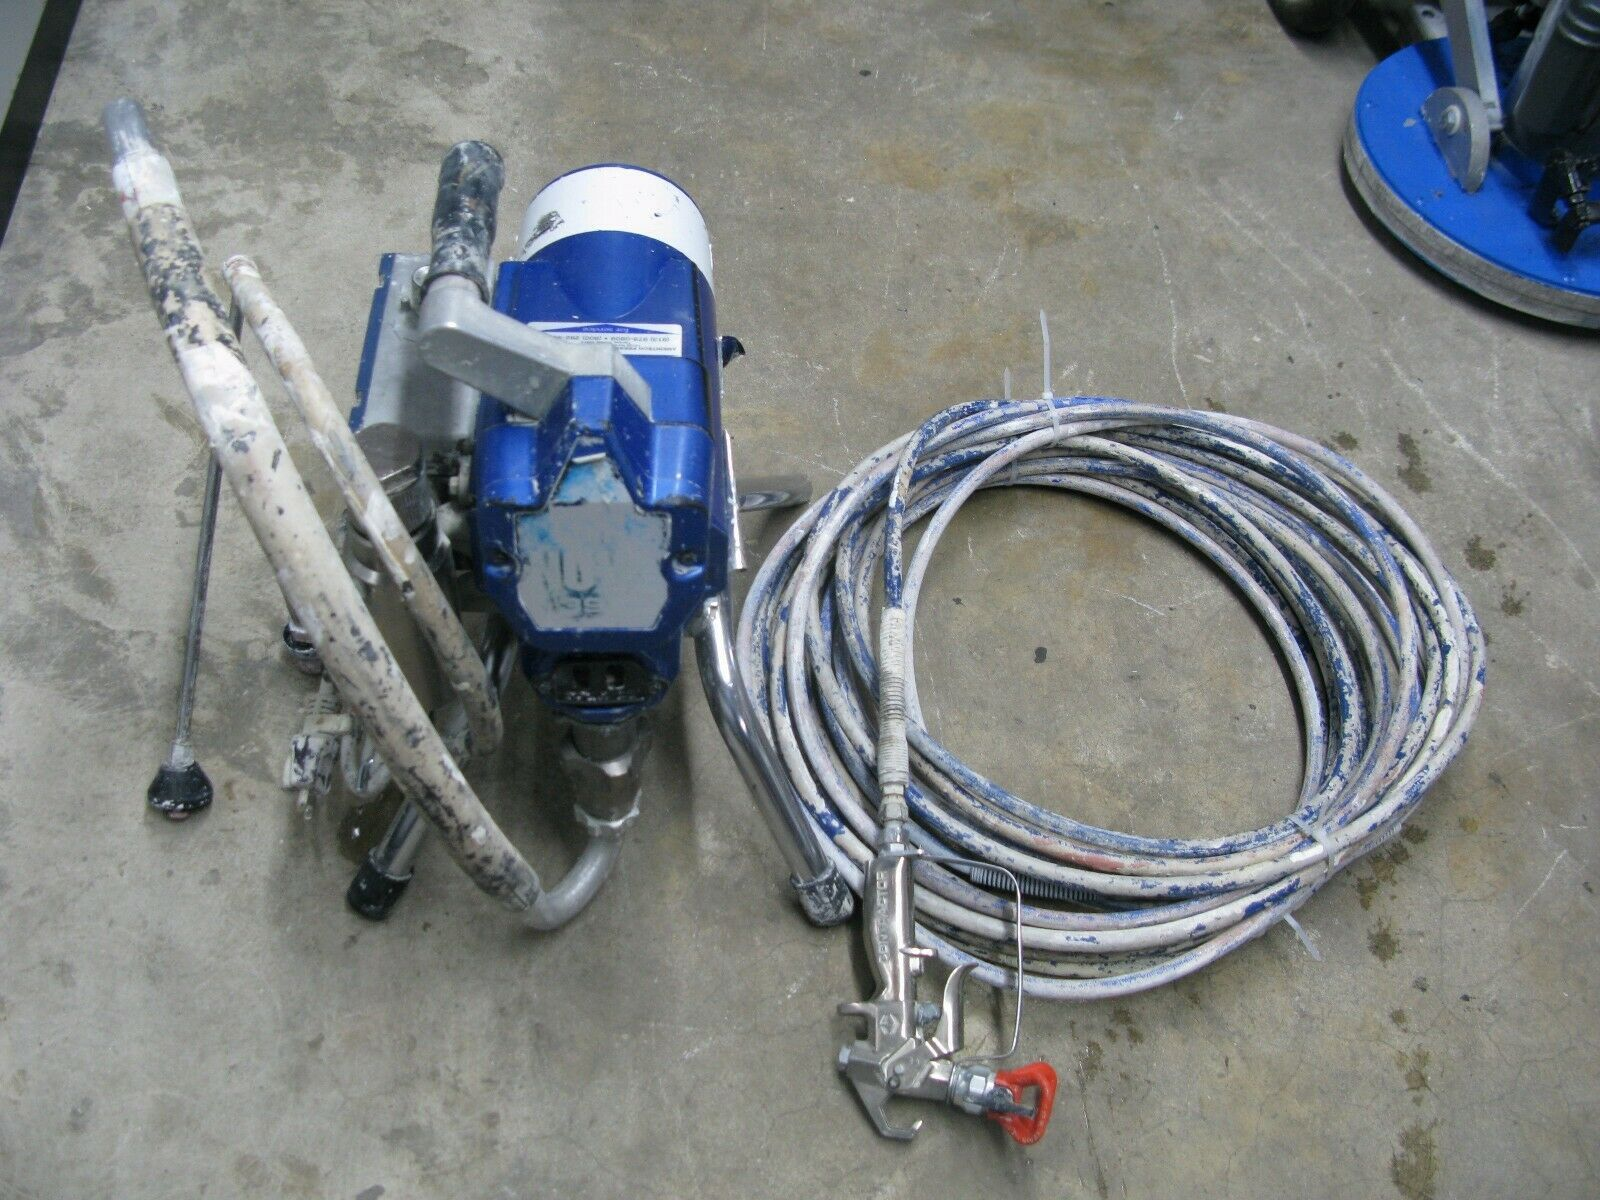 Details About Graco Ultimate Nova 395 Electric Airless Paint Sprayer 495 595 In 2020 Paint Sprayer Graco Sprayers